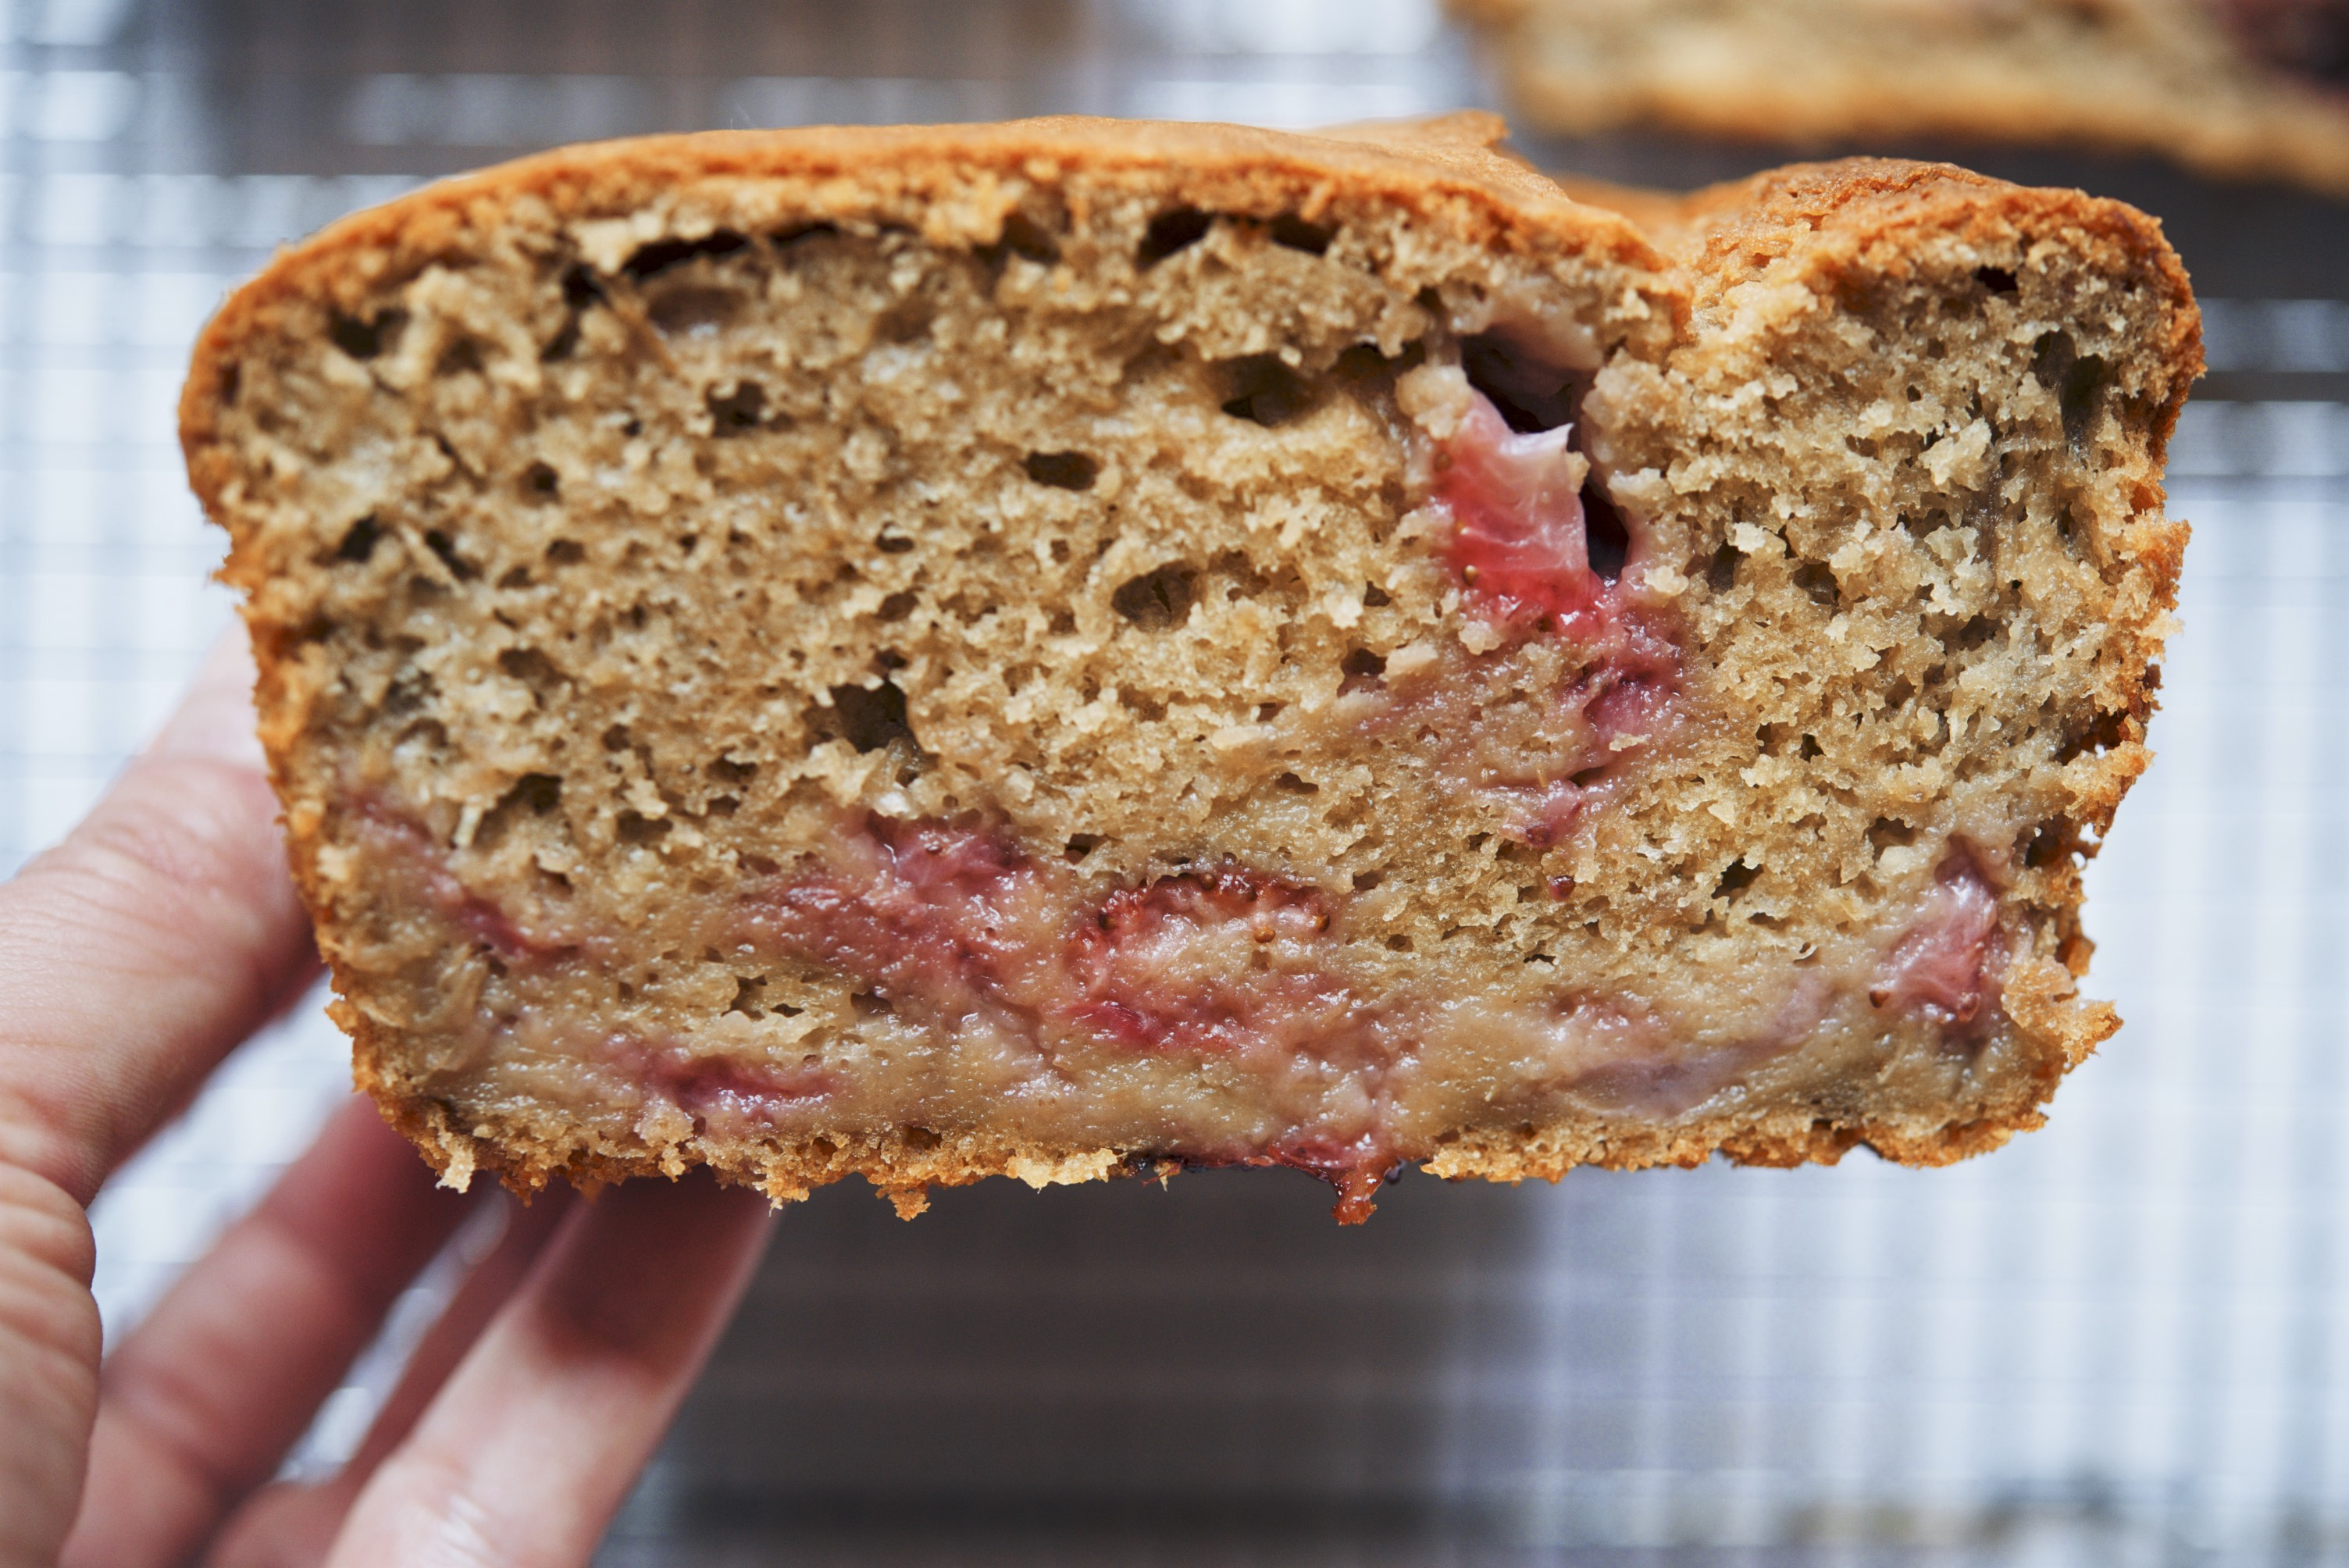 Crème Fraîche and Dark Sugar Strawberry-Rhubarb Loaf